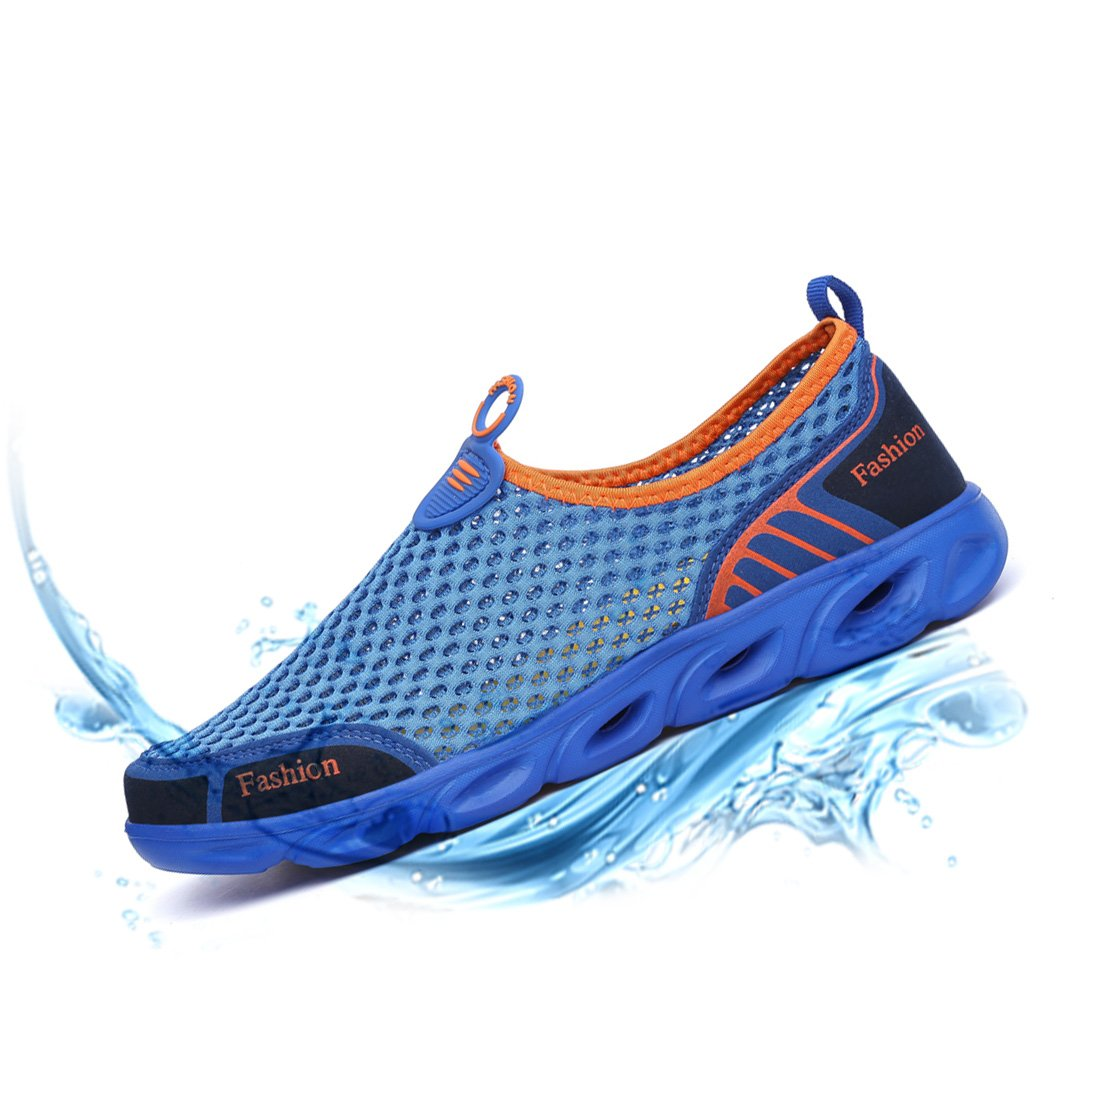 Ceyue Mens Waters Shoes Athletic Lightweight Quik Drying Slip-on Aqua Shoes for Women Wide Foot Big Feet (Blue,42)